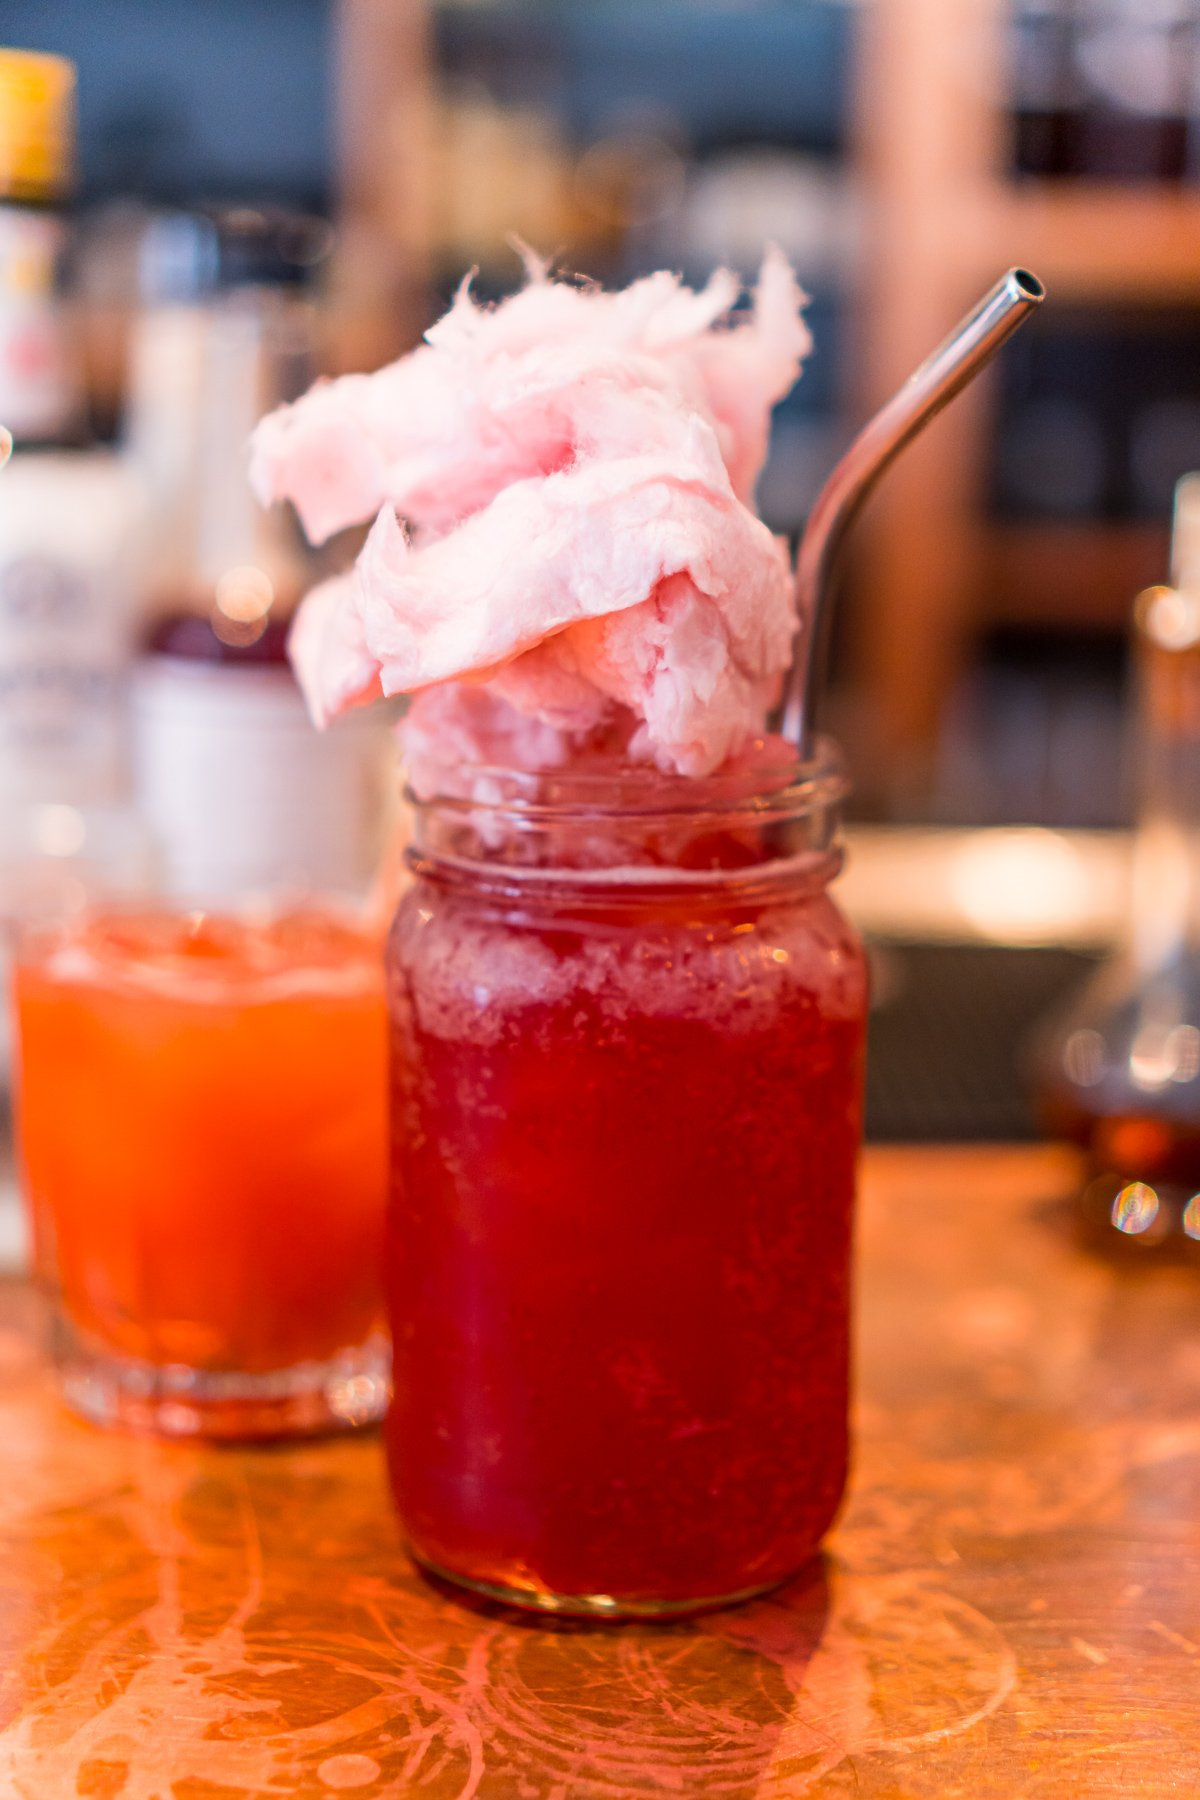 Cocktail served in a mason jar with cotton candy on top in Portland, Maine restaurant.